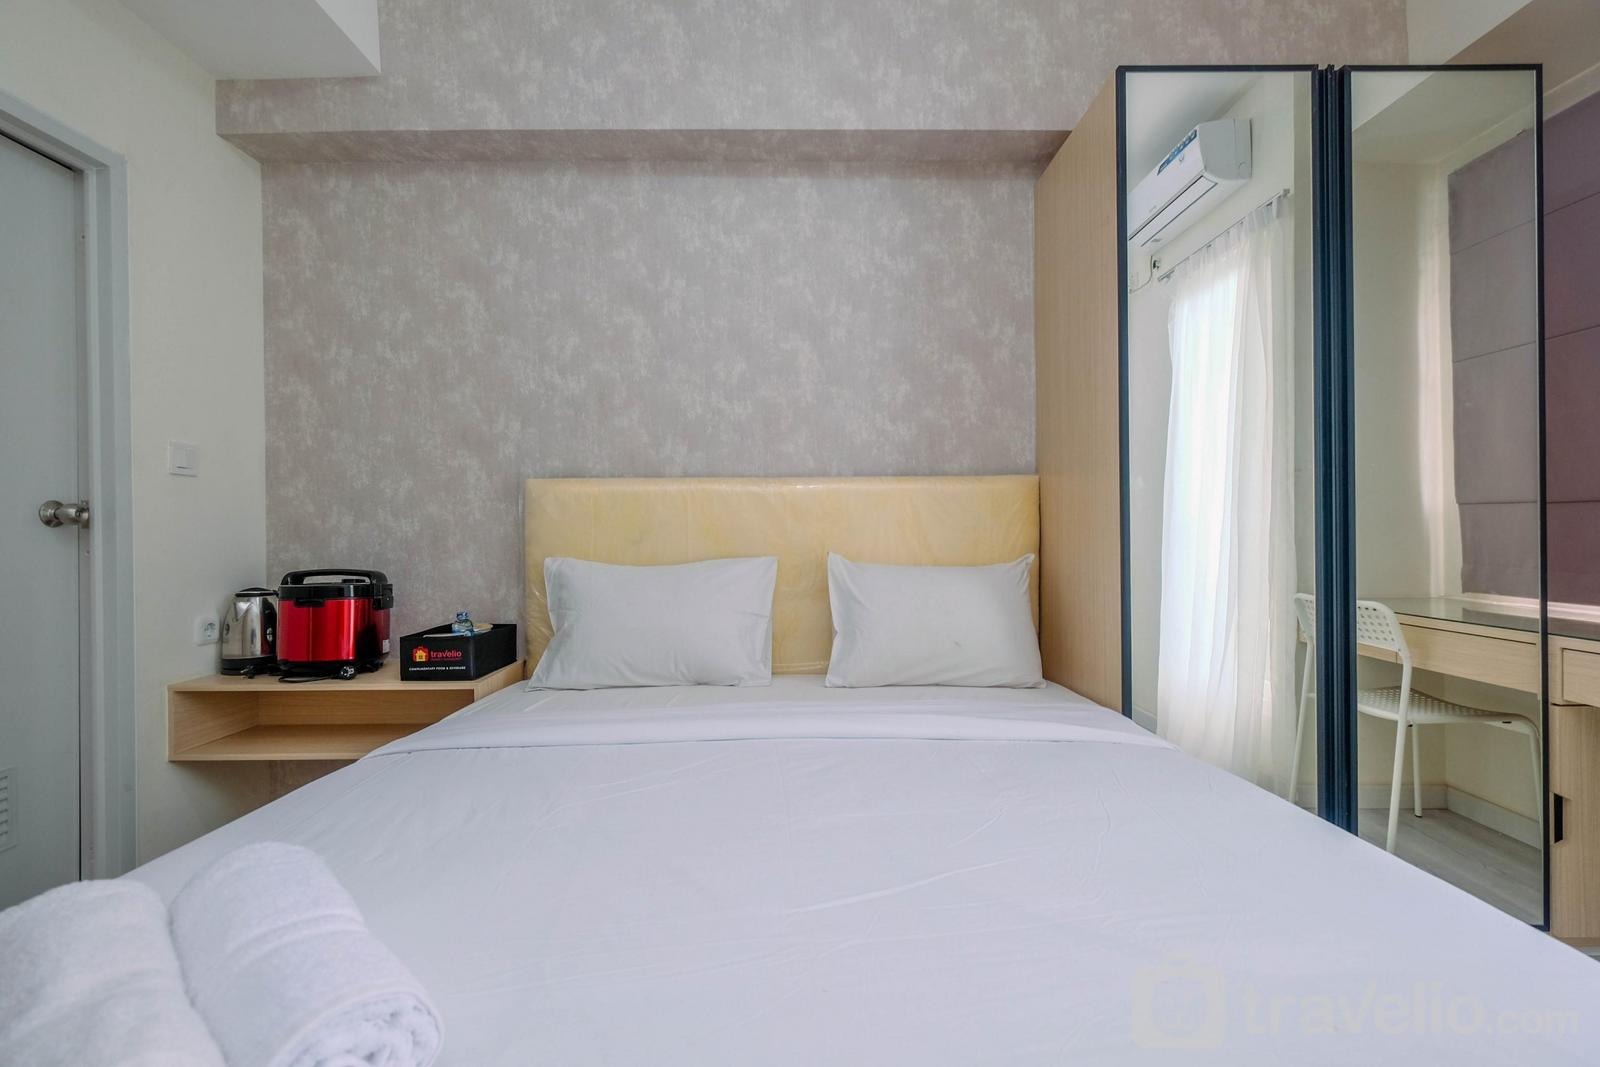 Podomoro Golf View Apartment - Sophisticated Studio Room at Podomoro Golf View Apartment By Travelio